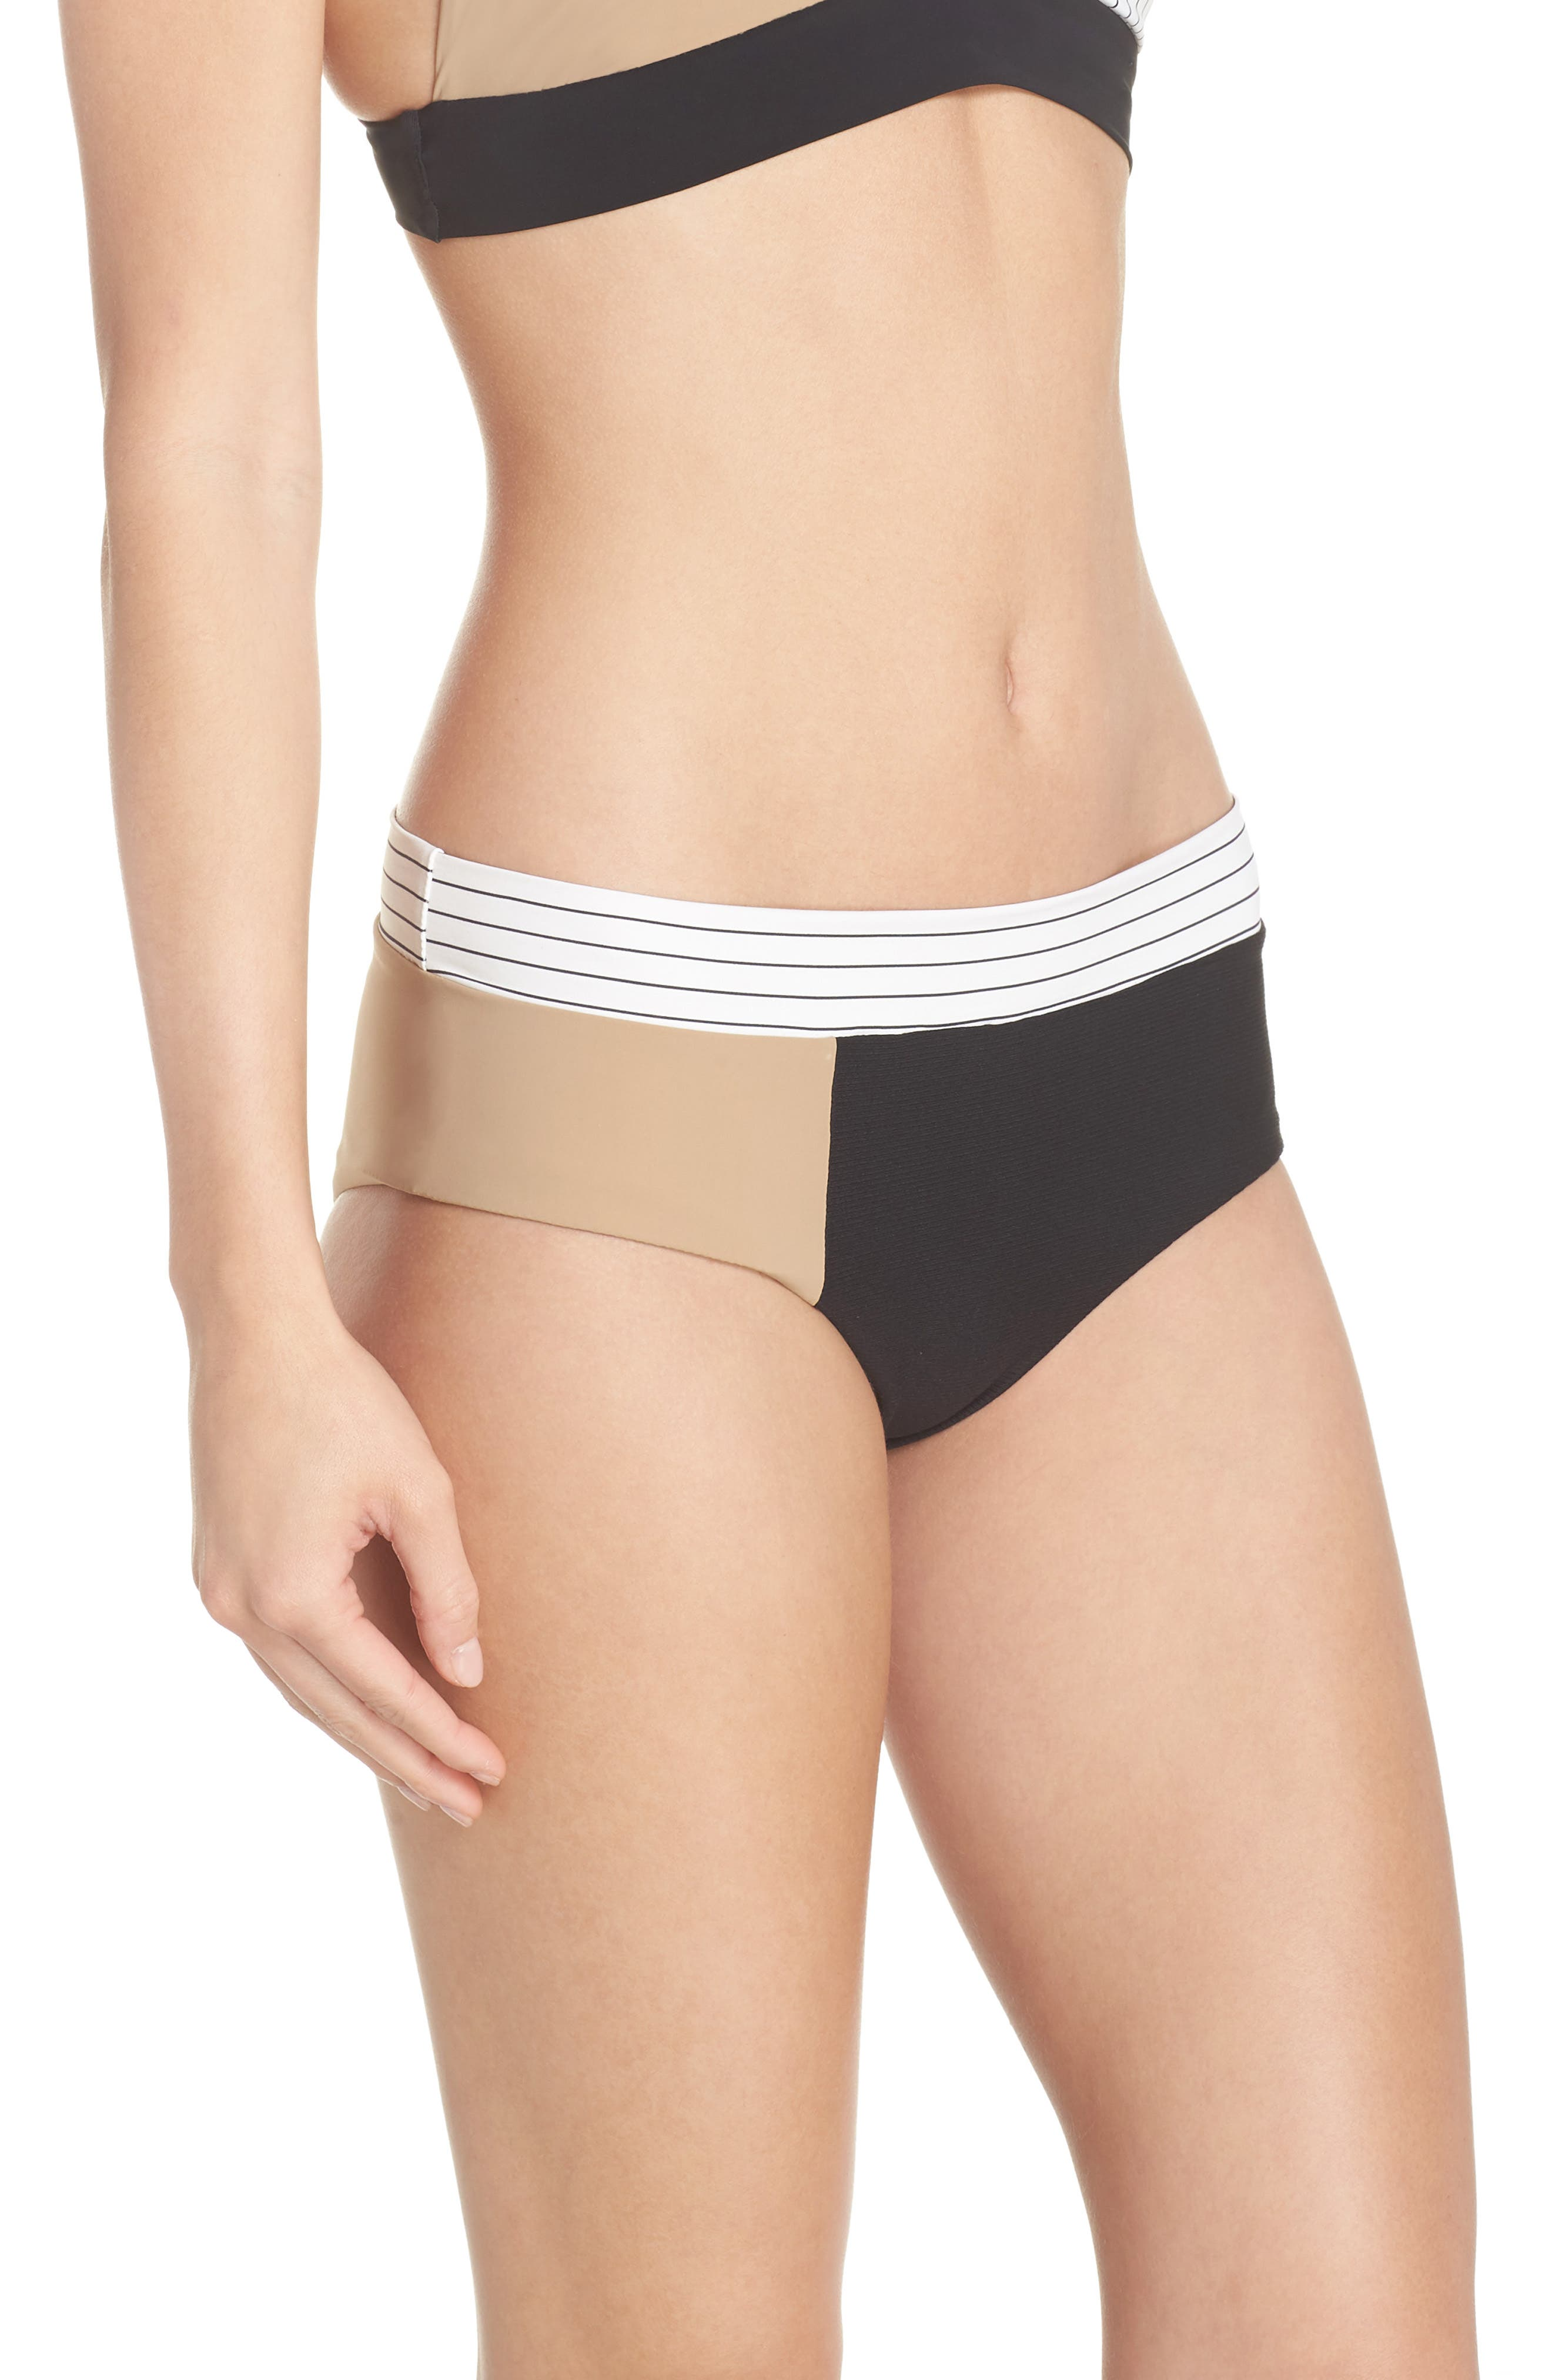 Makaveli Bikini Bottoms,                             Alternate thumbnail 4, color,